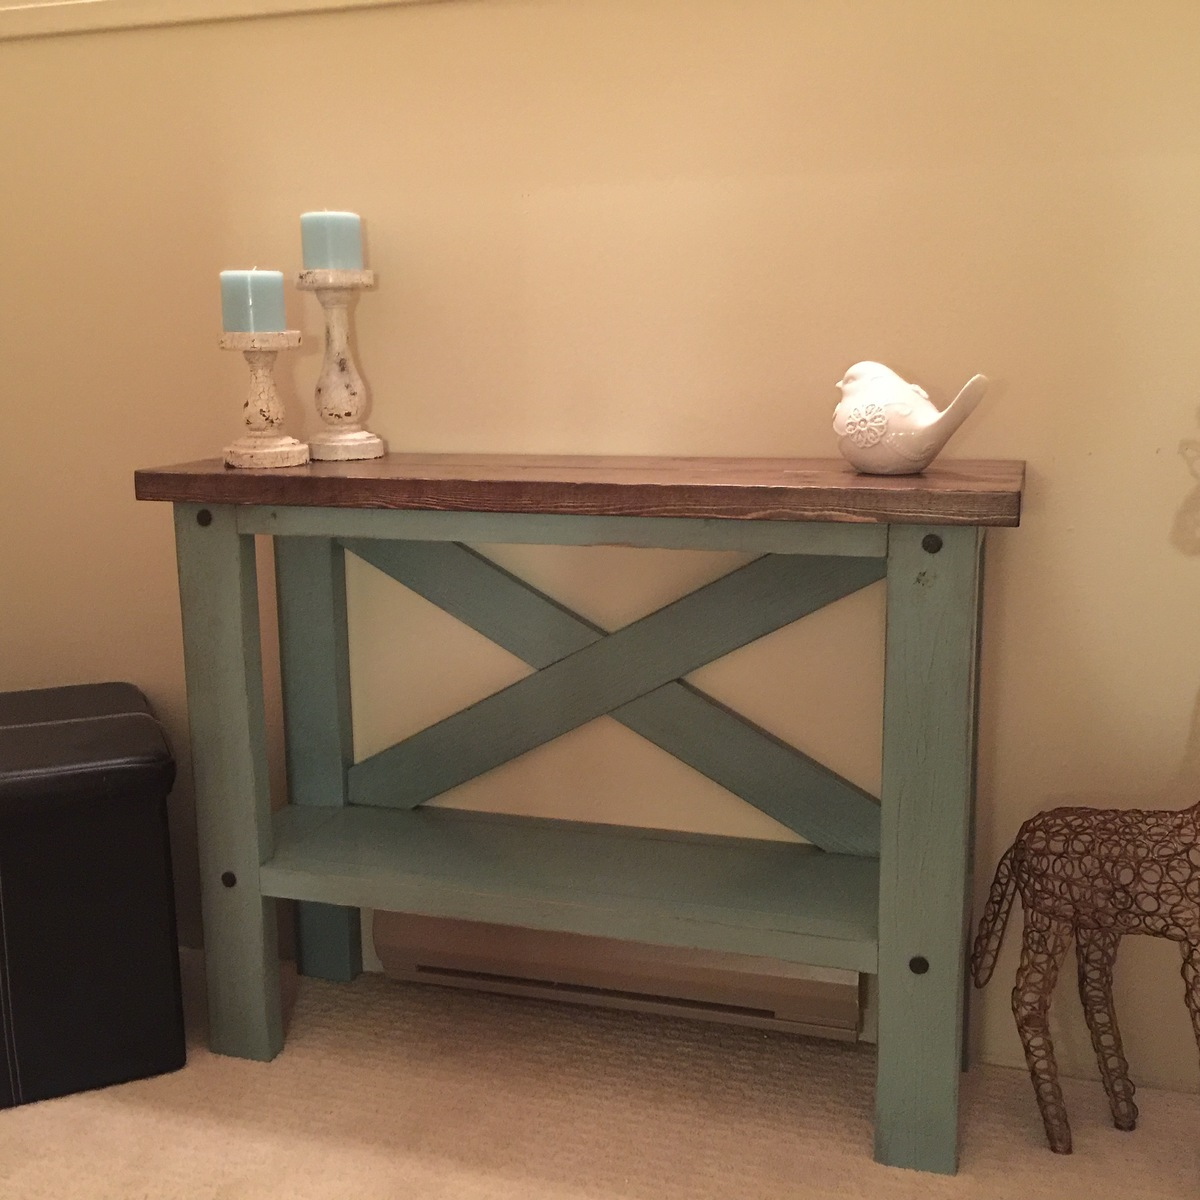 Diy crate console table - Mini Console Table